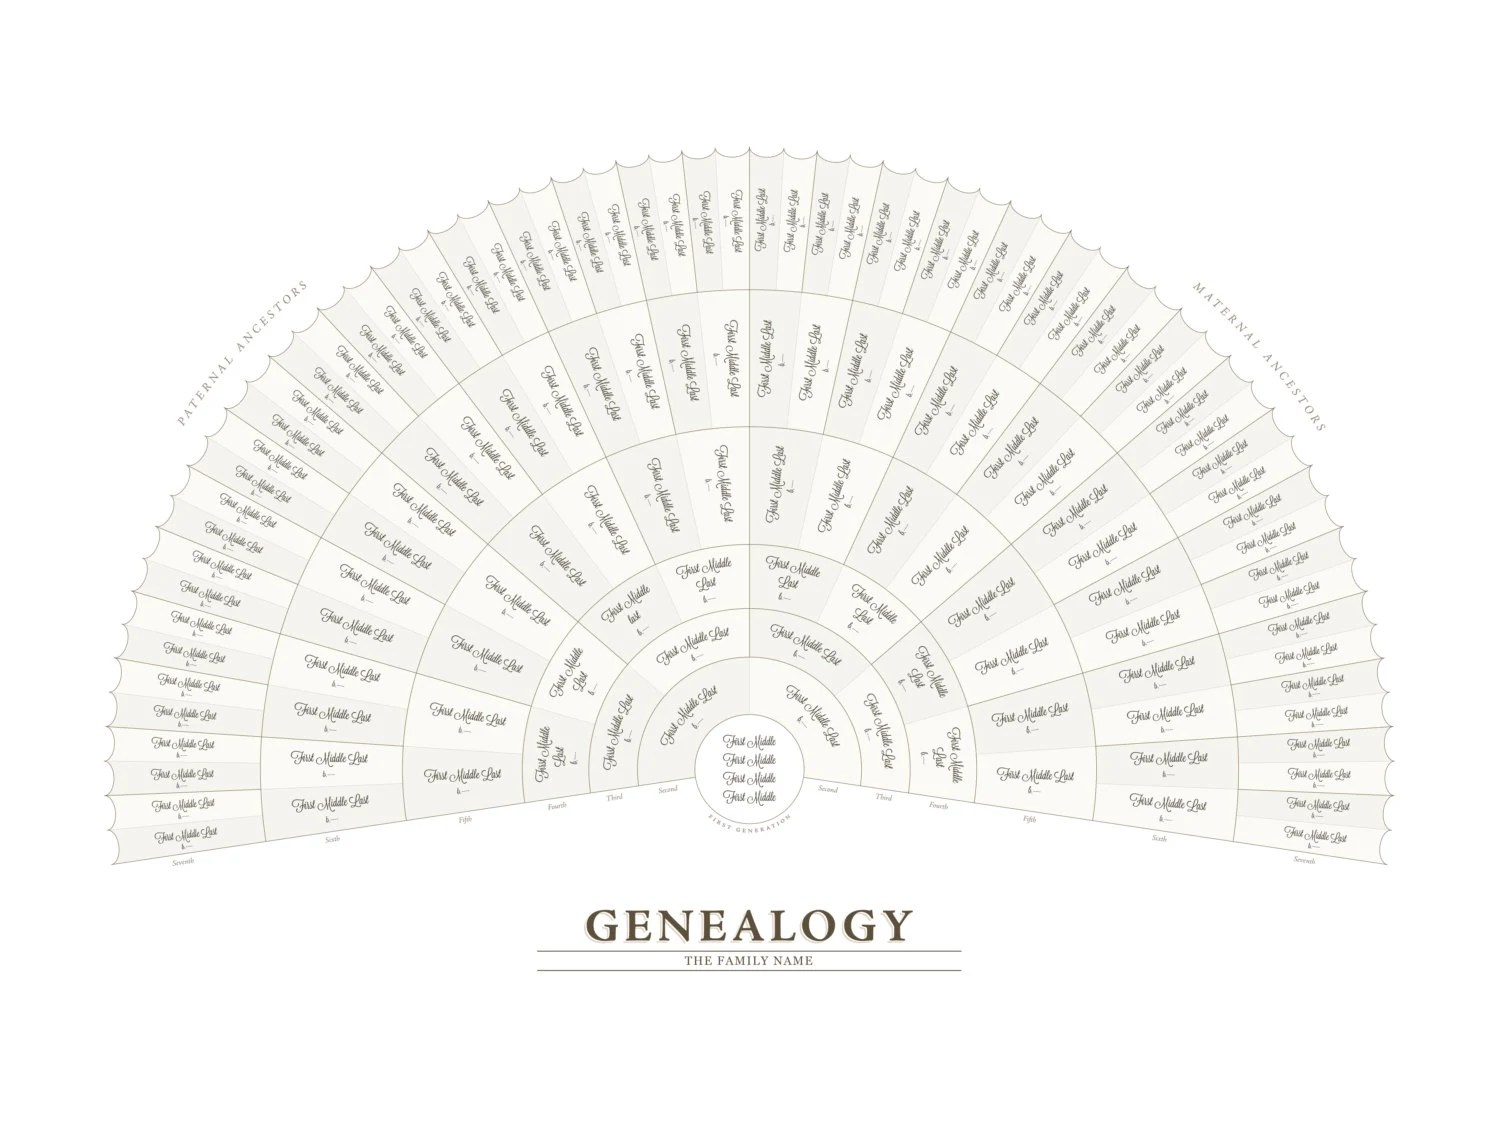 Genealogy Fan Chart Adobe Illustrator Template